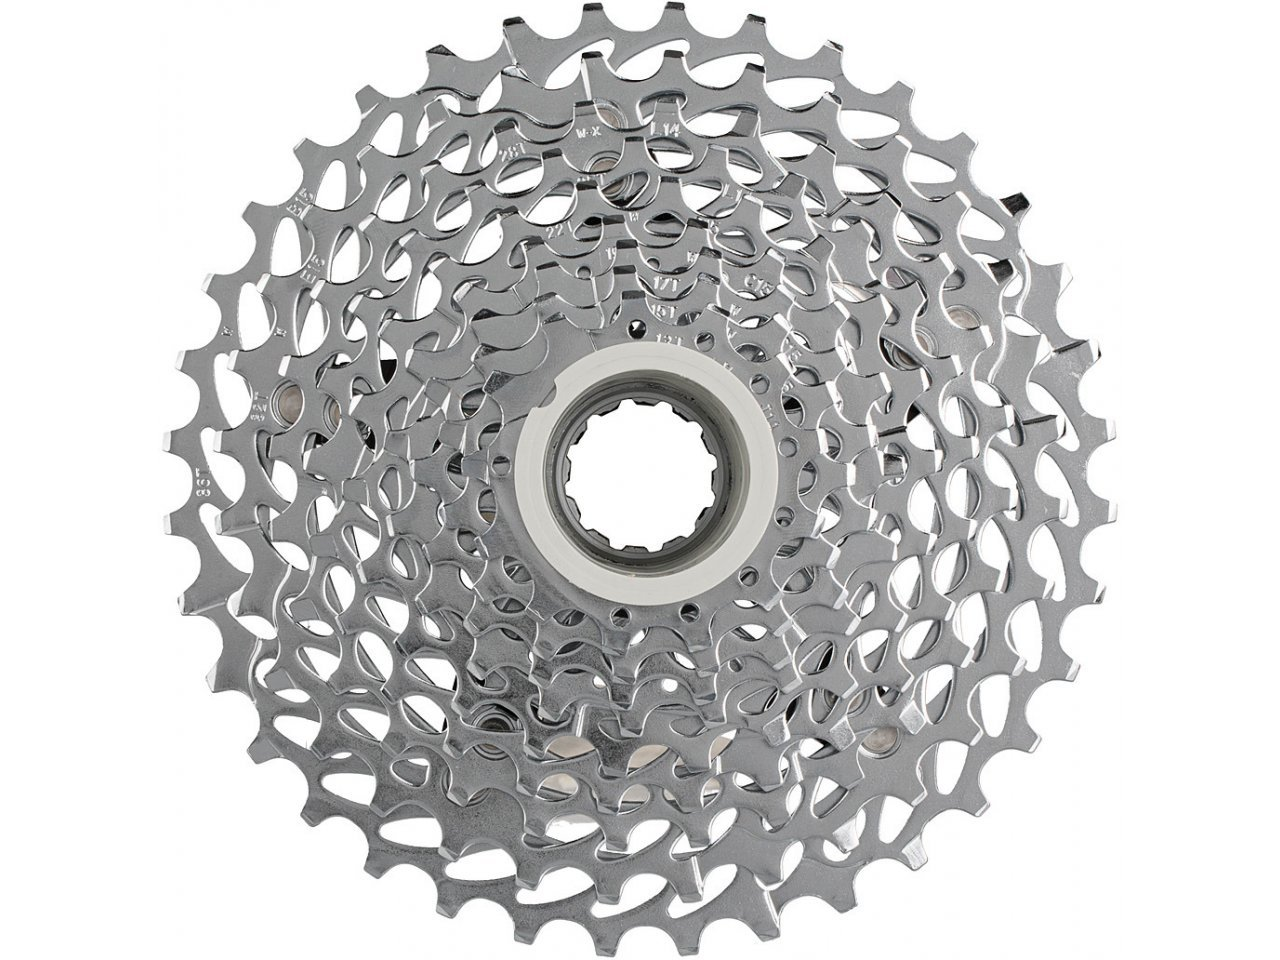 SRAM PG 1050 10 Speed Bicycle Cassette 11-28  New